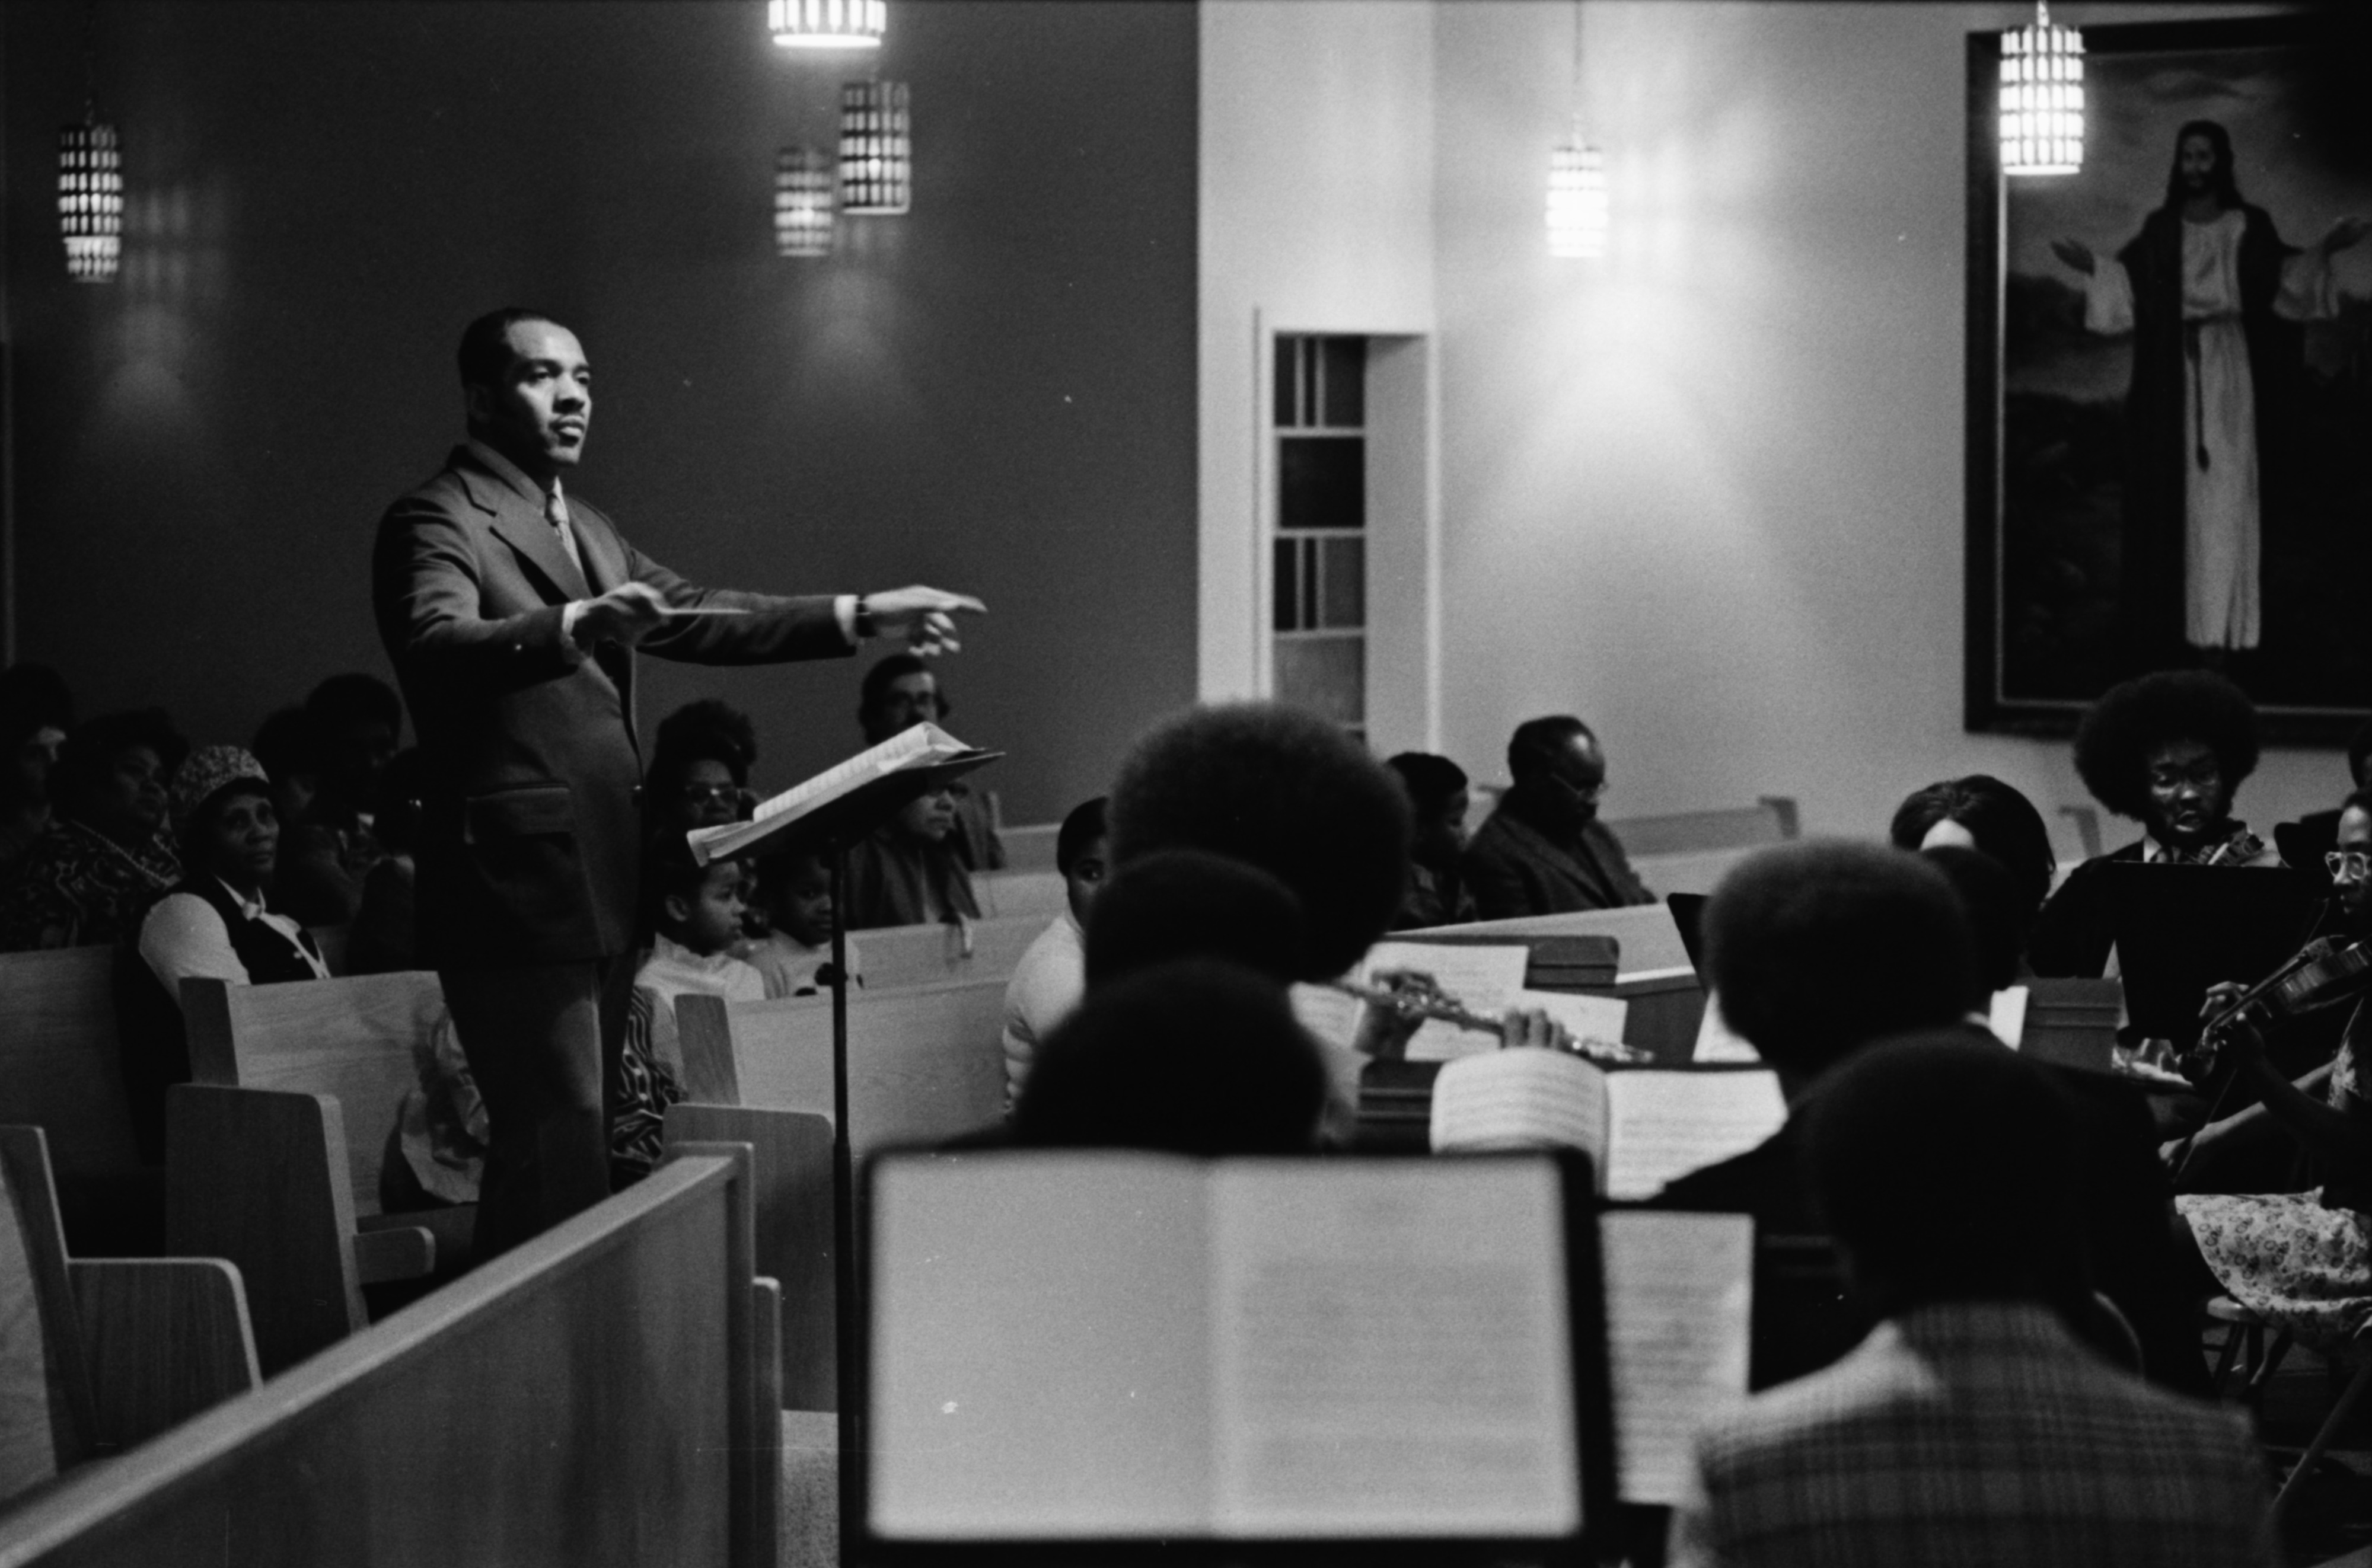 Willis Patterson Conducts Community Chorale and Orchestra at Bethel AME Church, December 1974 image